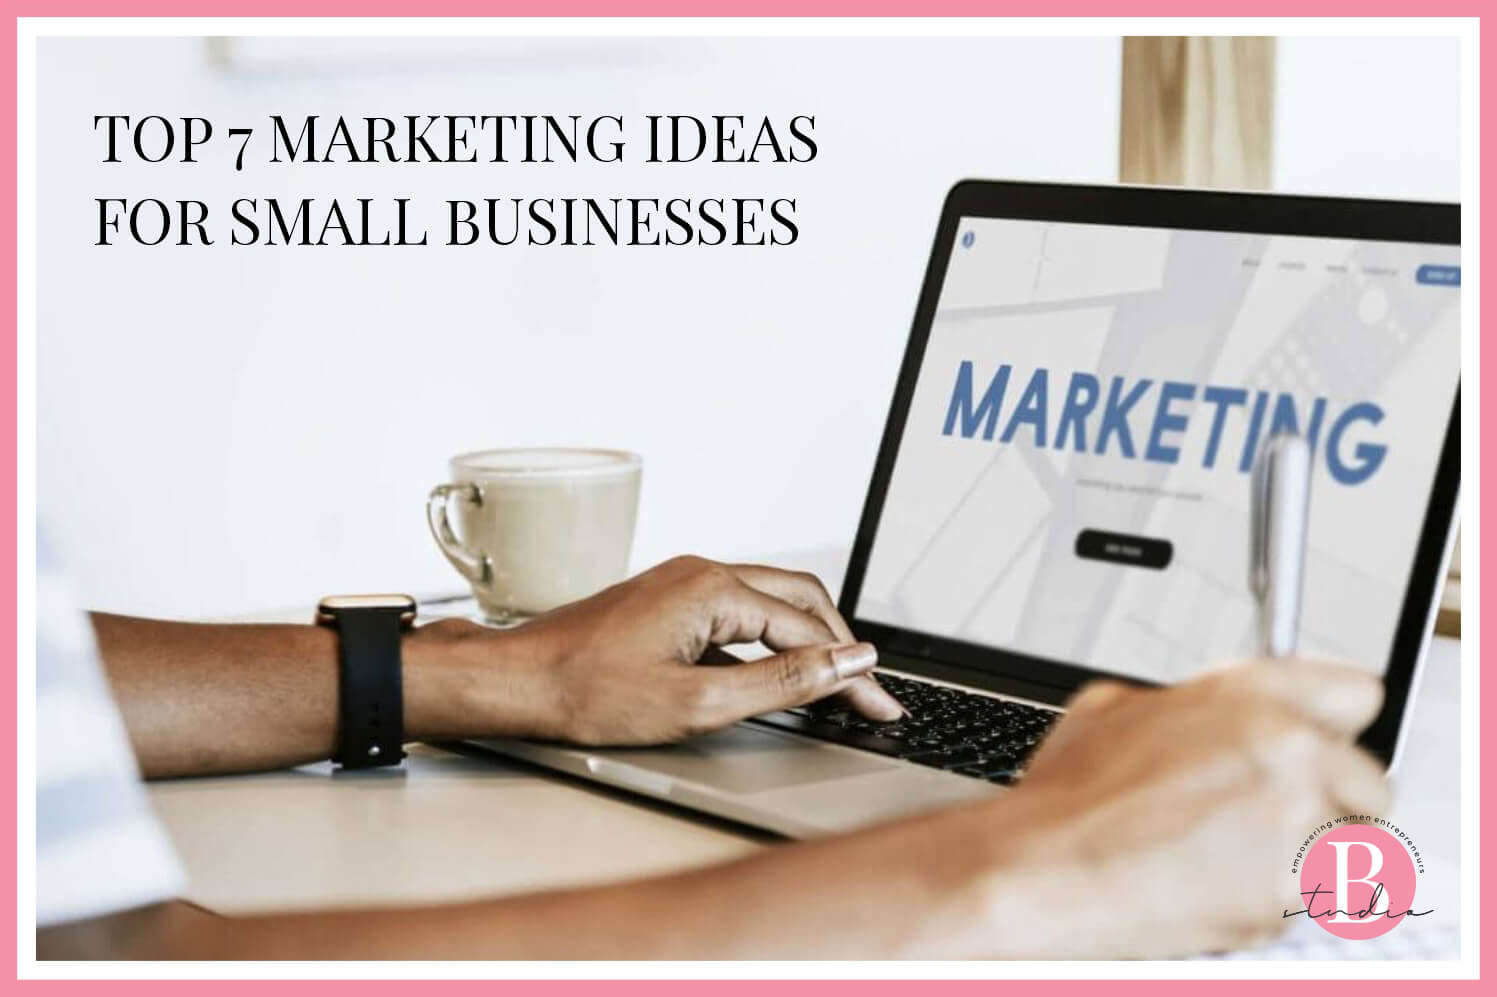 Top 7 marketing ideas for small businesses